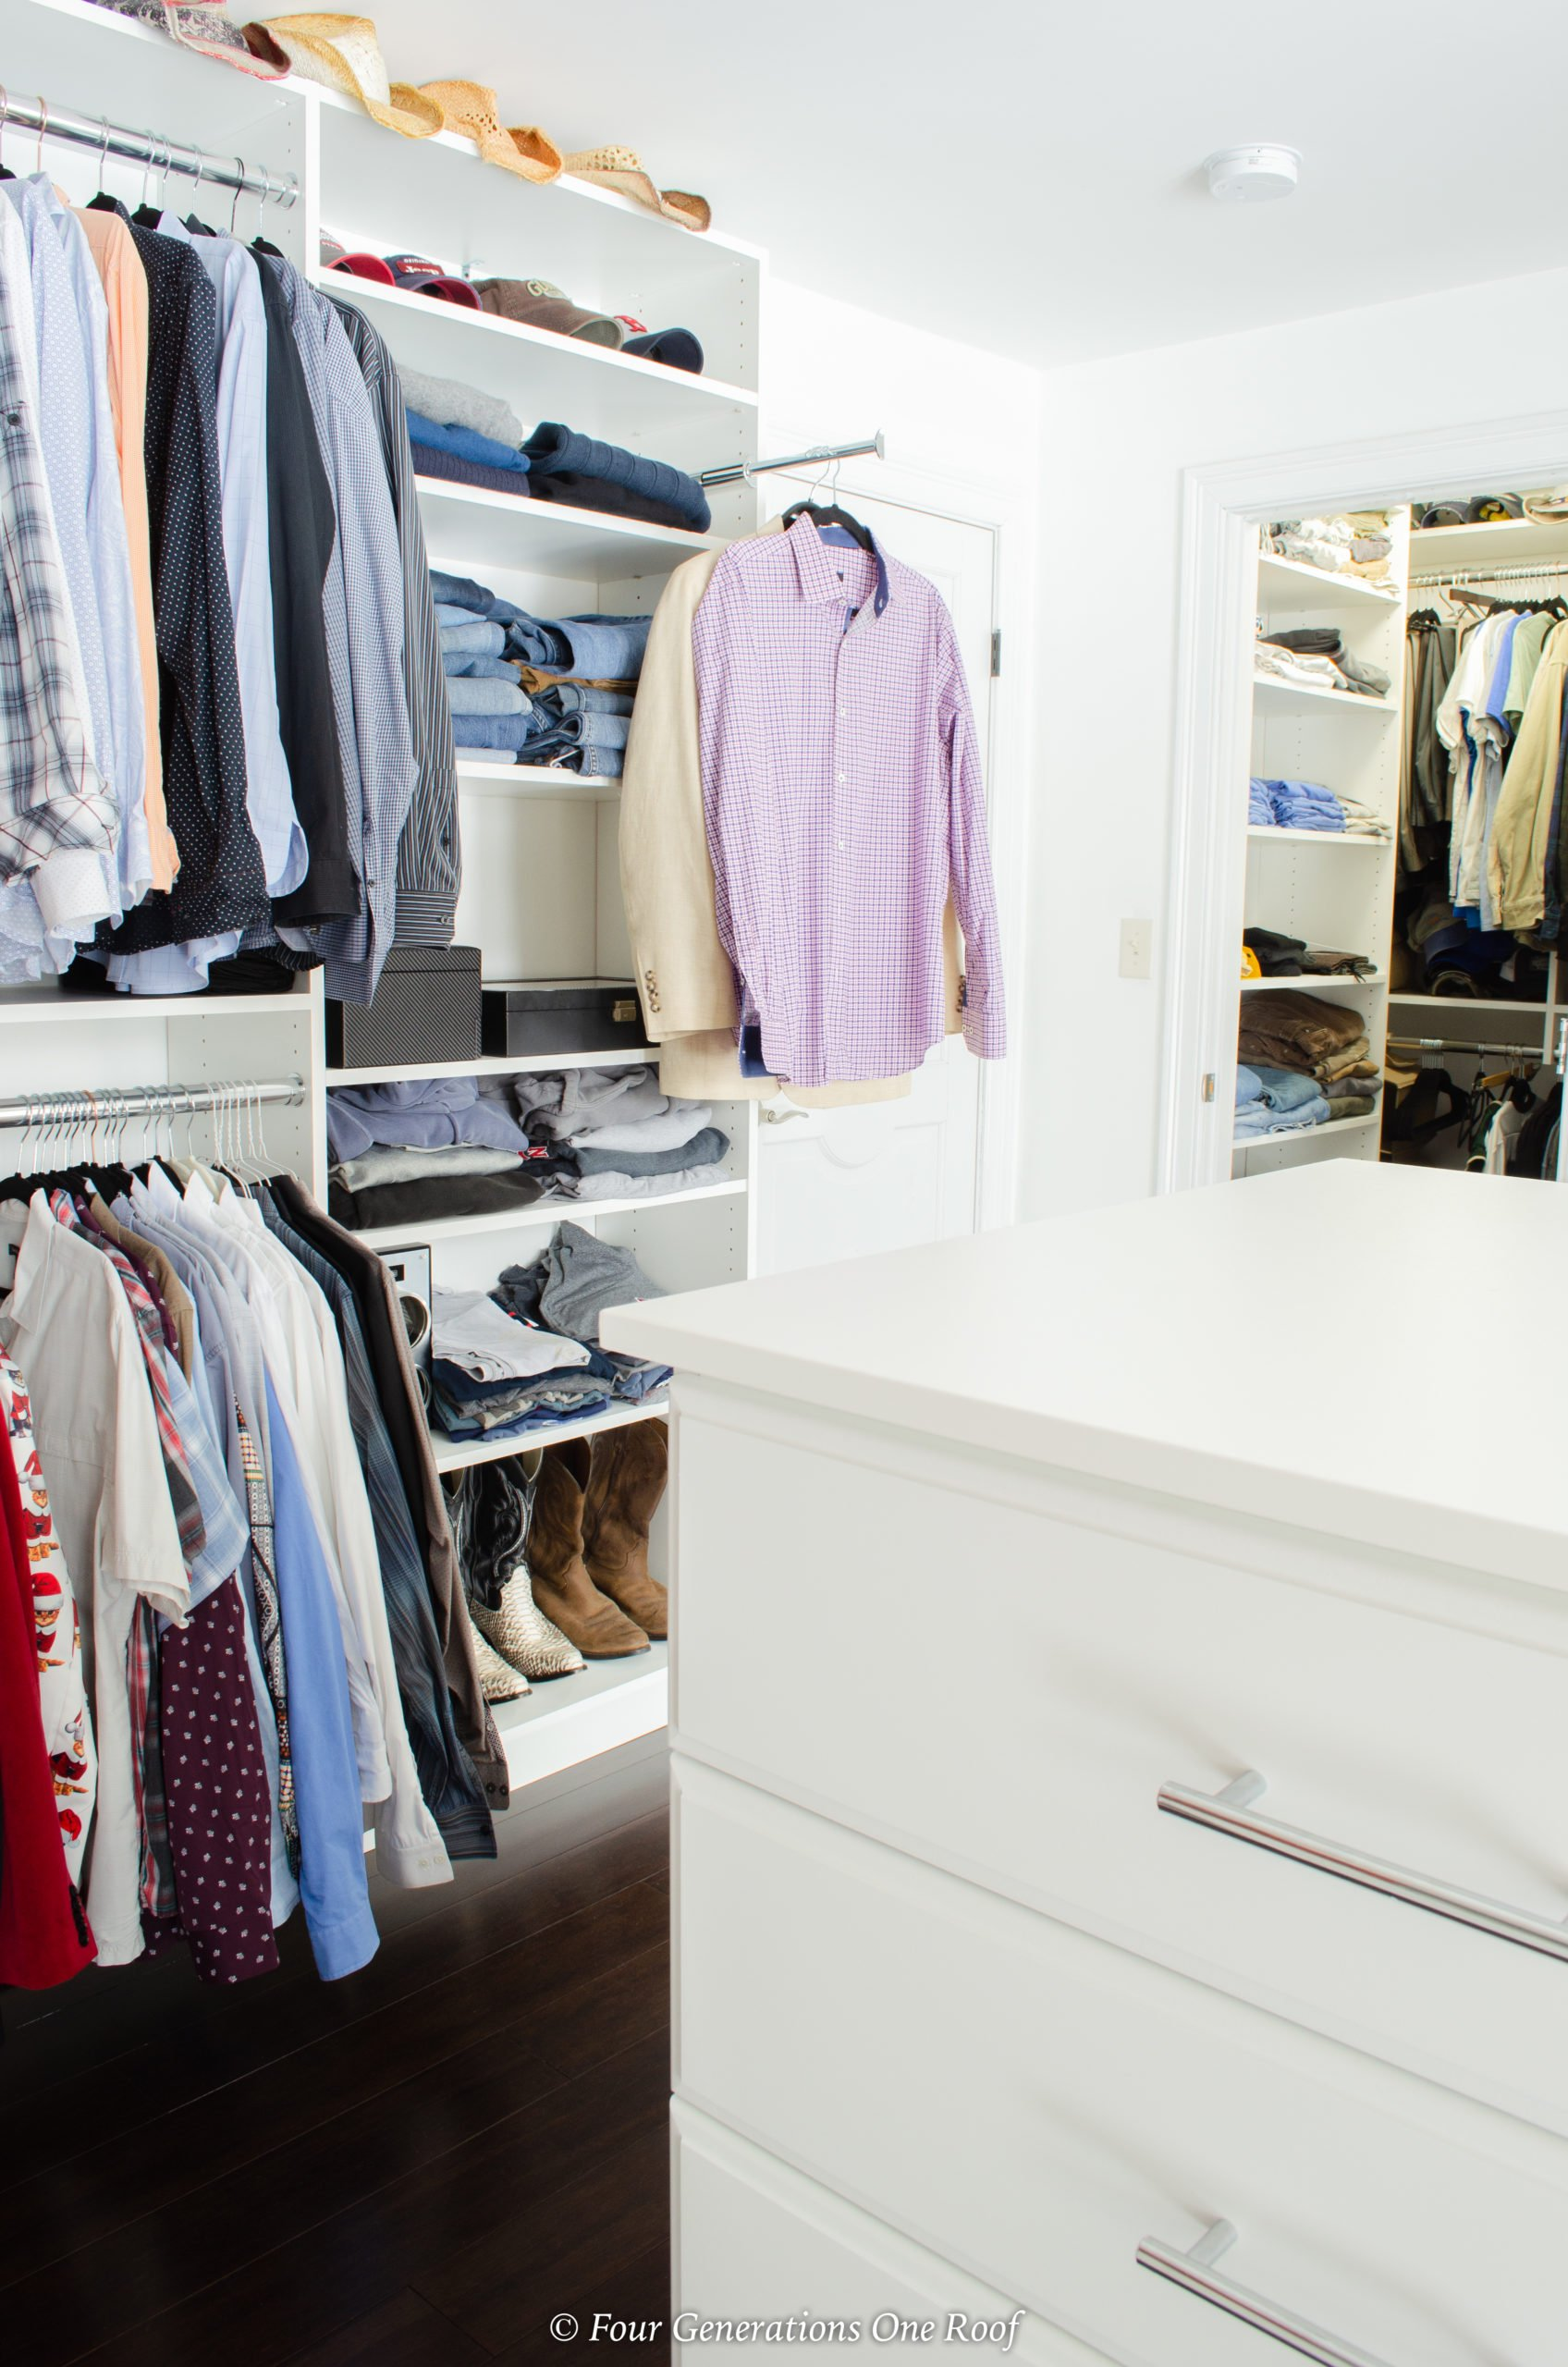 Easyclosets white wood closet system, womans clothing, valet bar, jewelry drawer, pull out ironing board